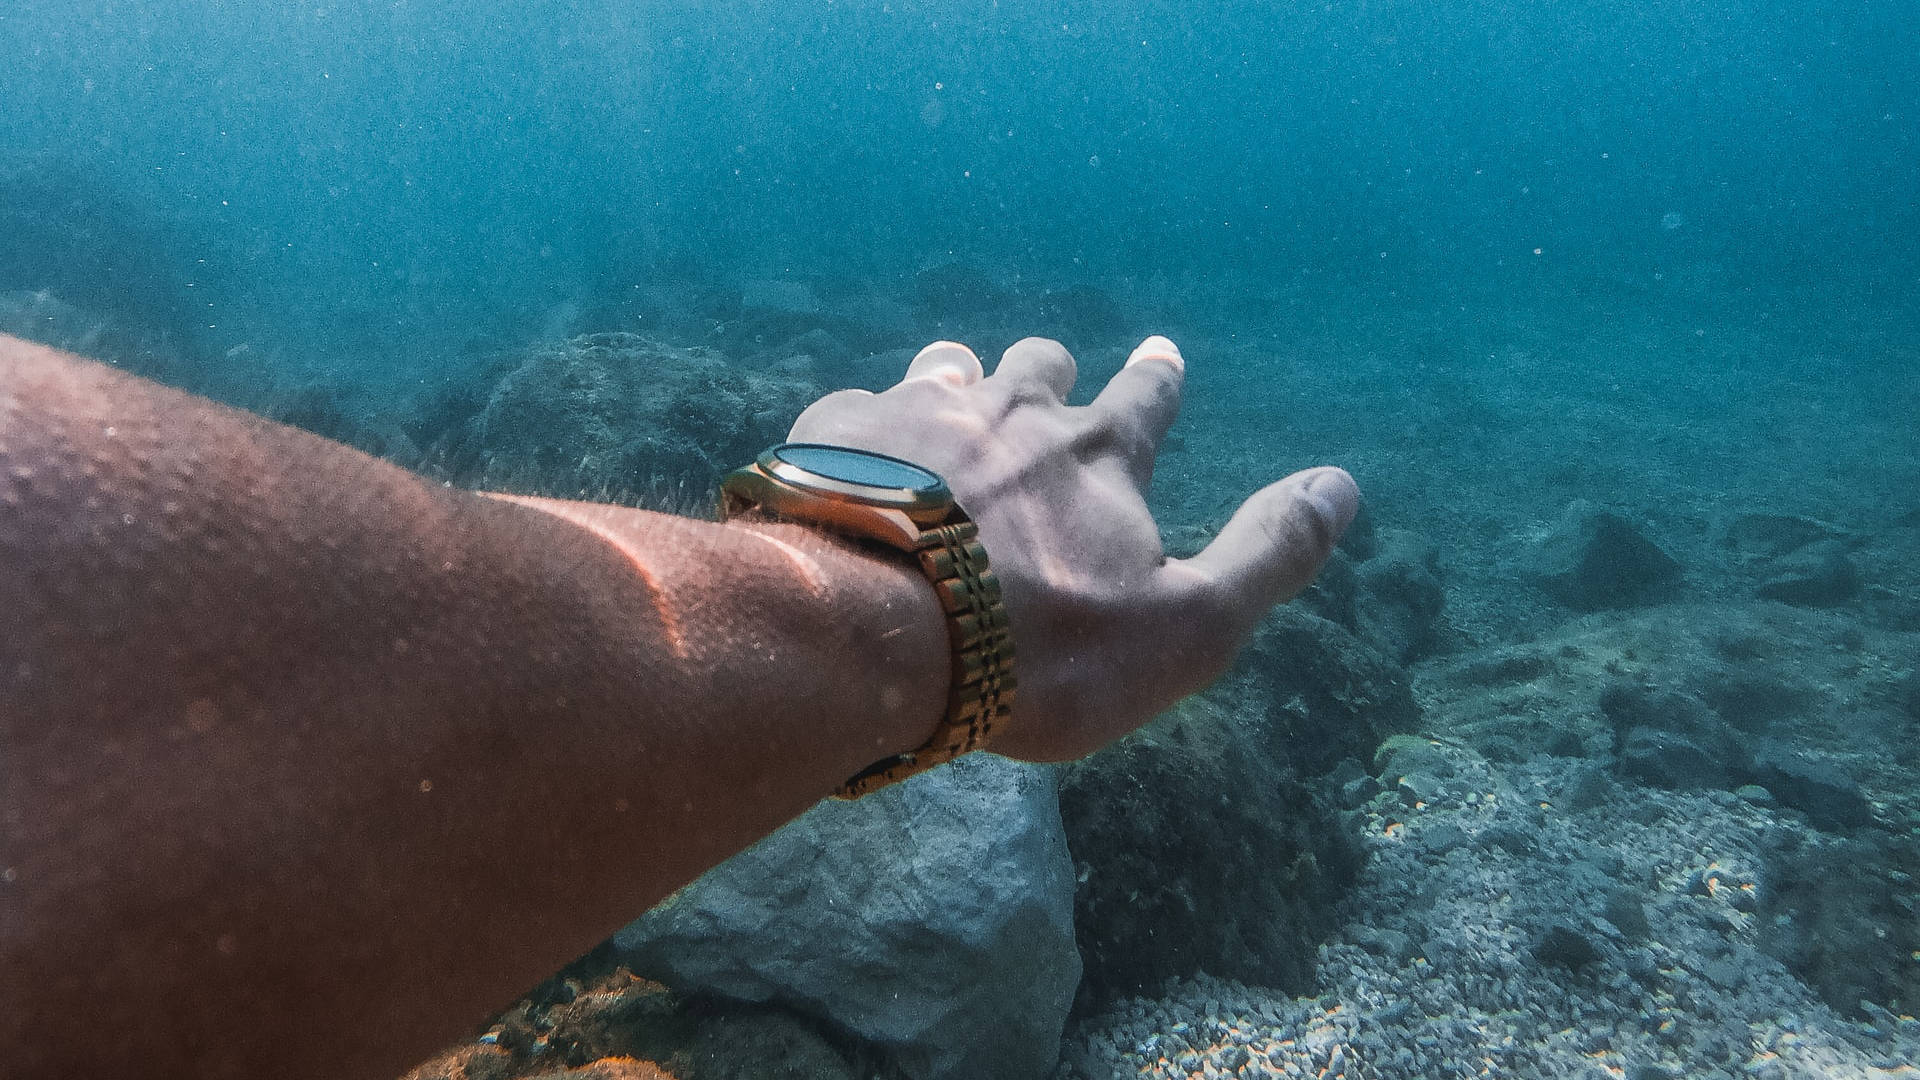 Watch being used under water after being tested for customer in Edinburgh